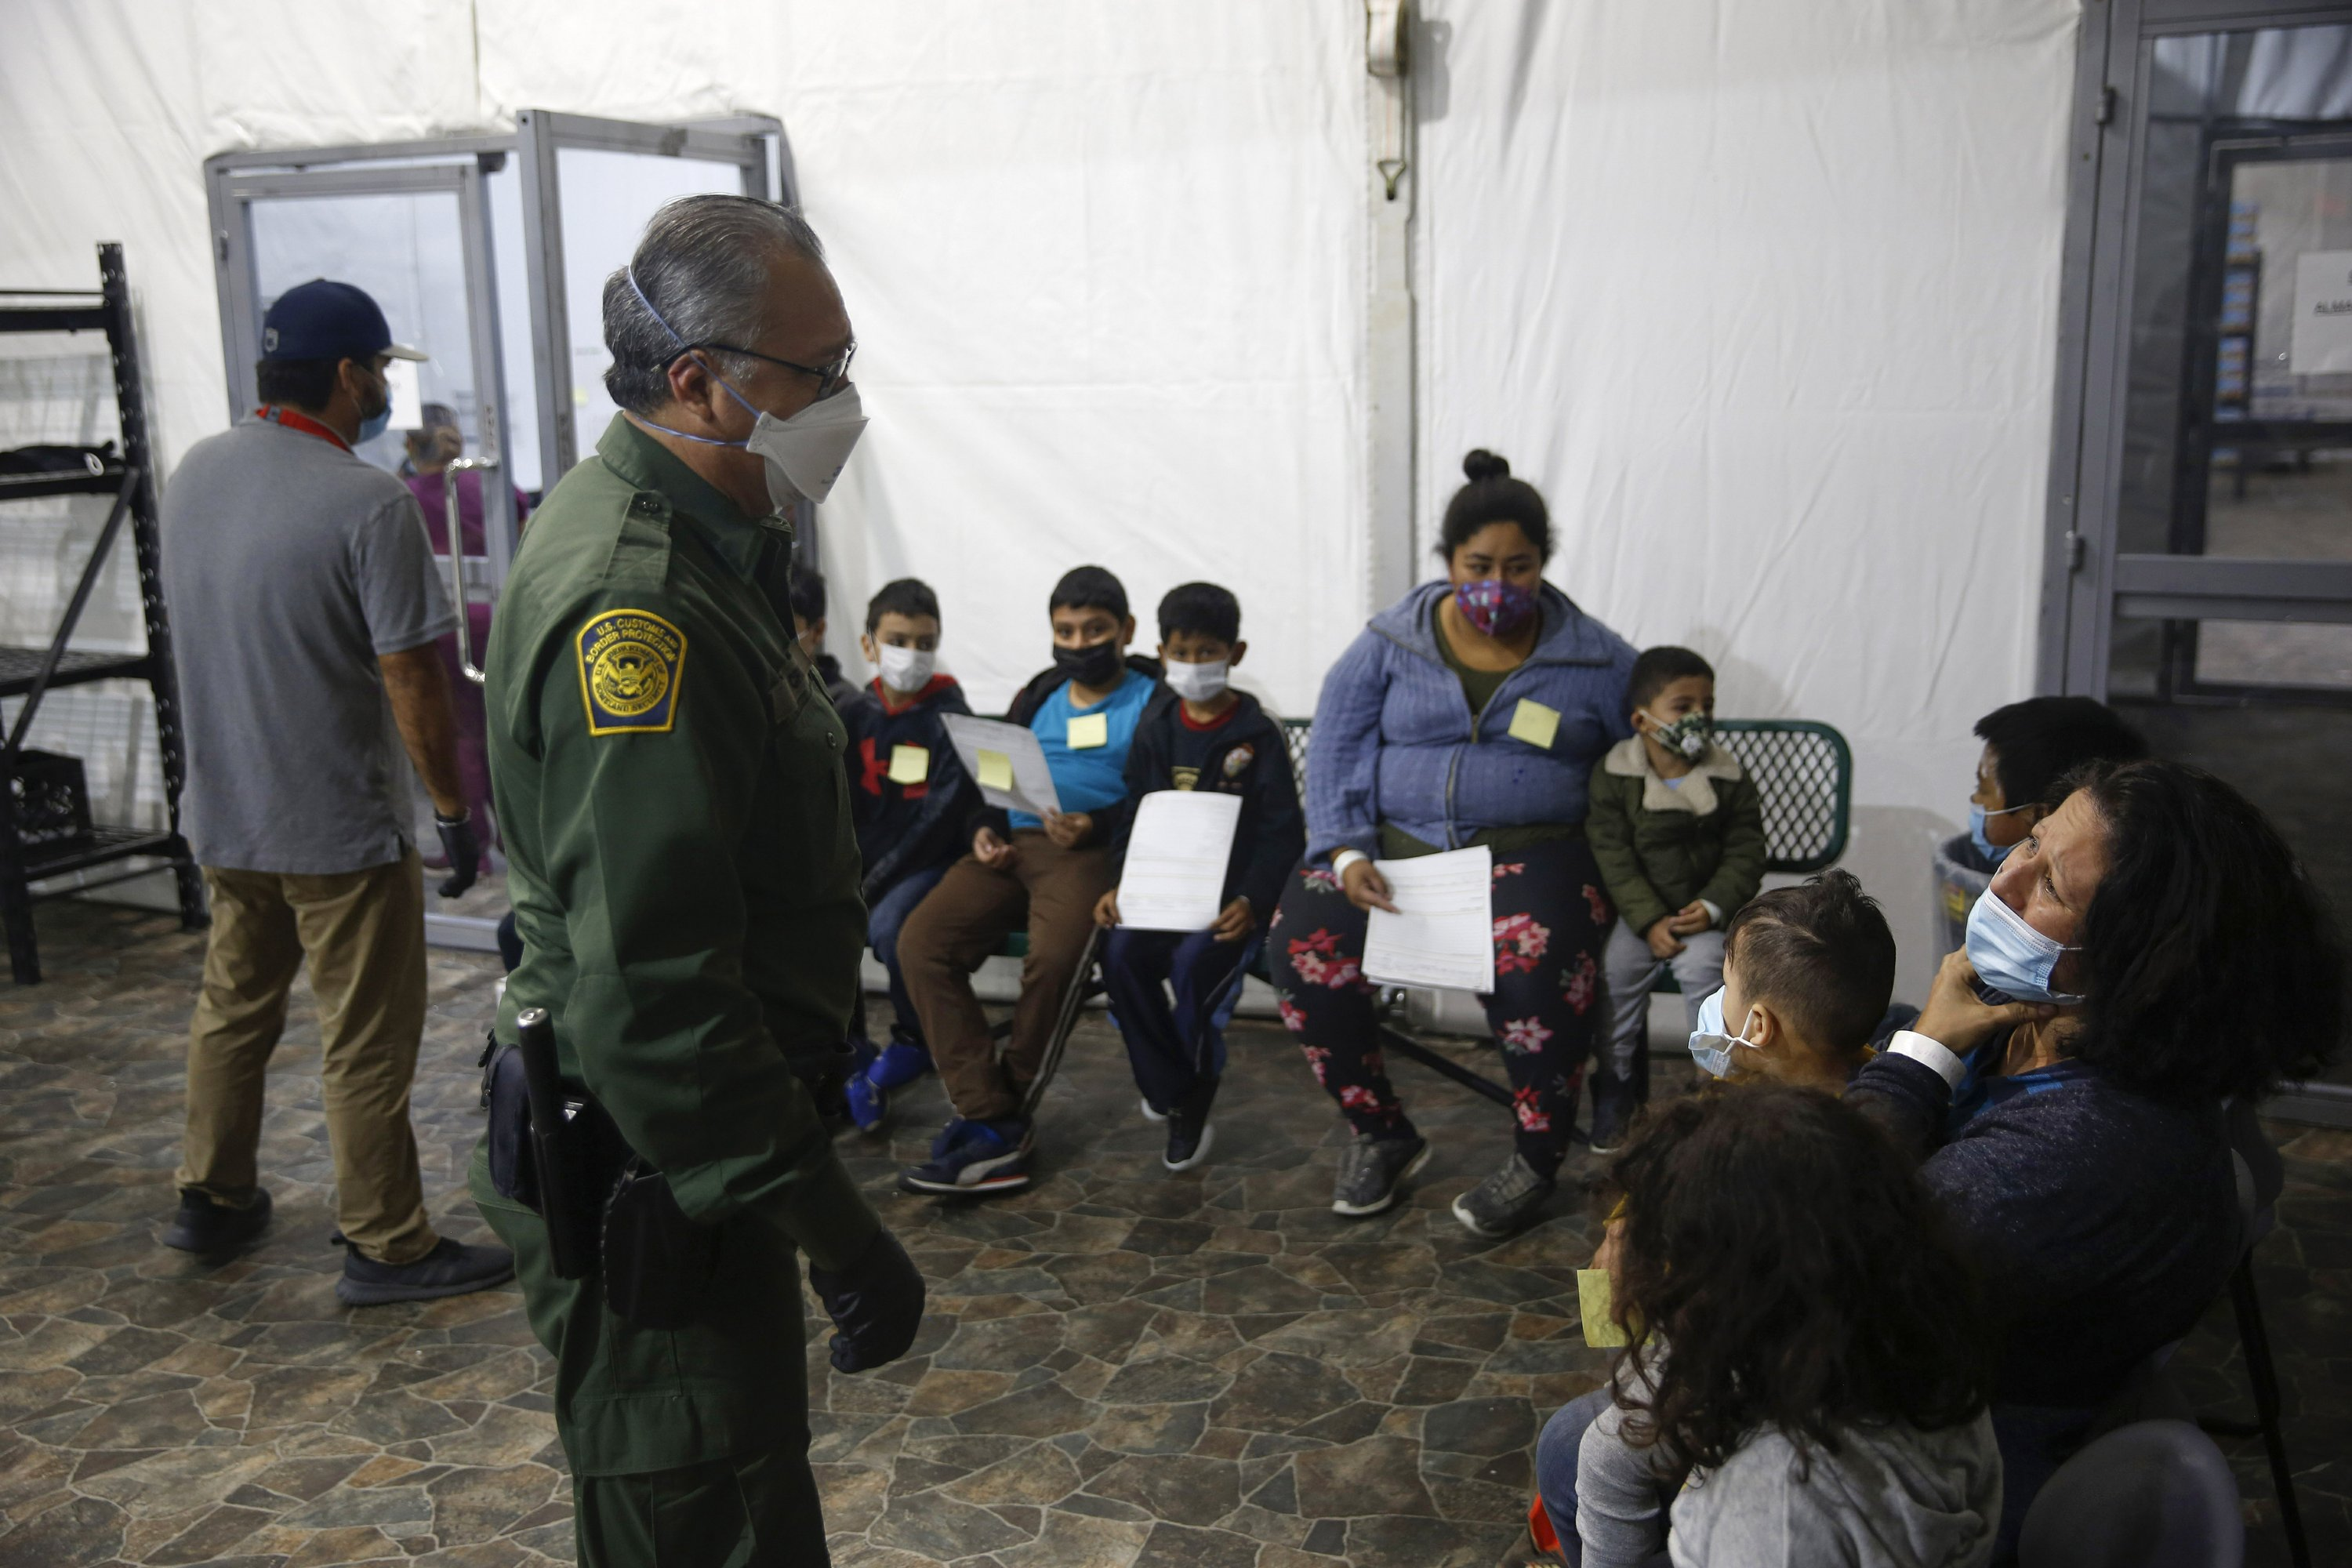 Over 4,000 migrants, many kids, crowded into Texas facility